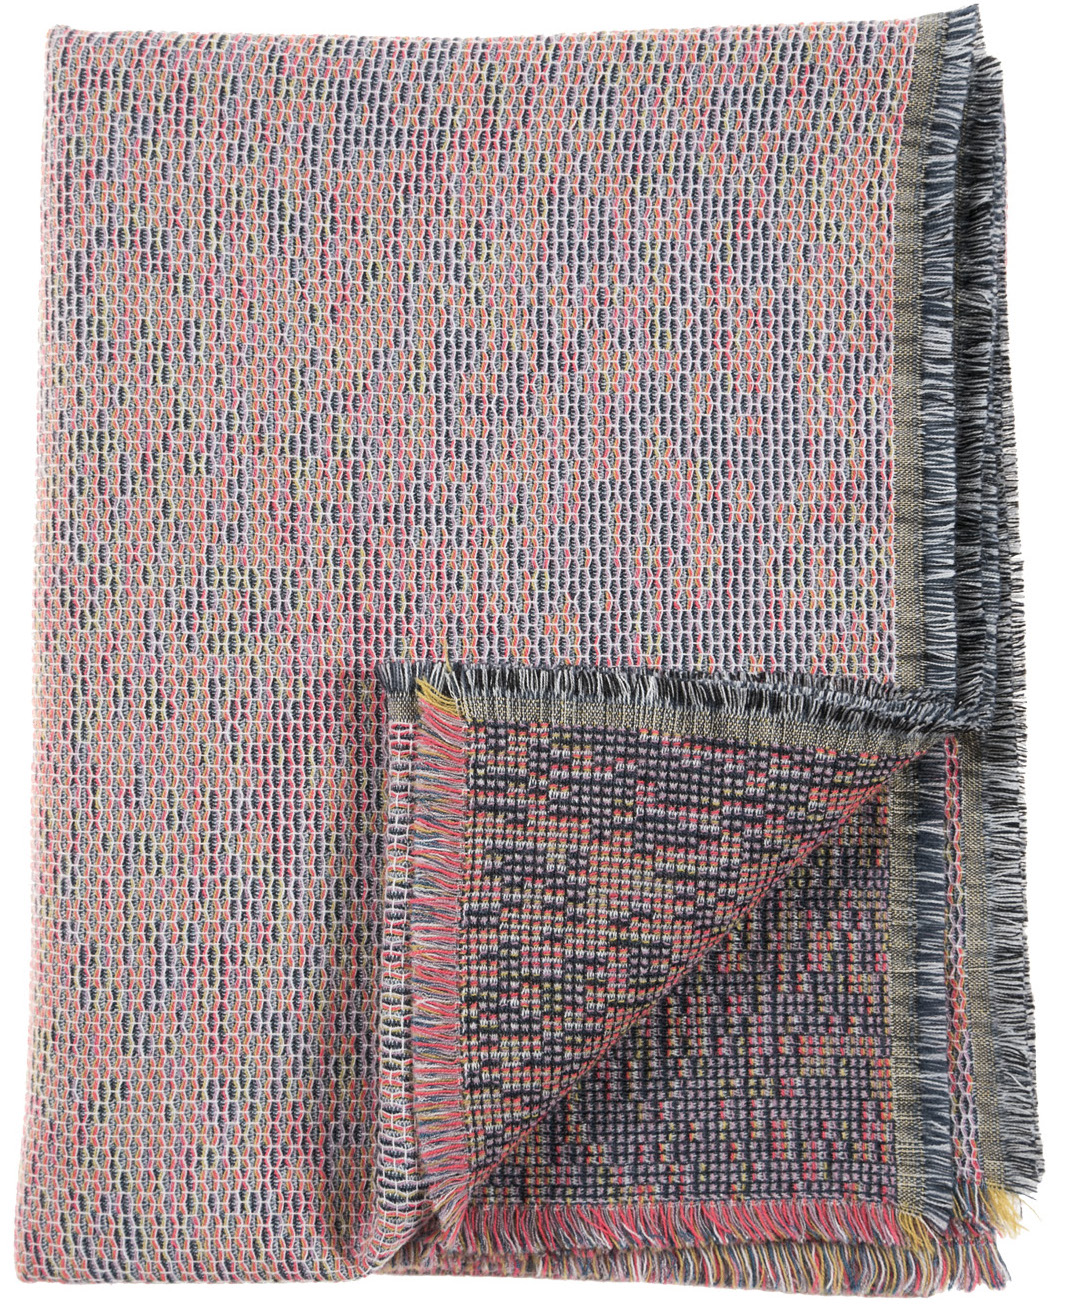 Reflet/ orange - mini throw ≅ 142 x 110 cm  Composition: jacquard woven fabric 78% wool 16% viscose 6% silk